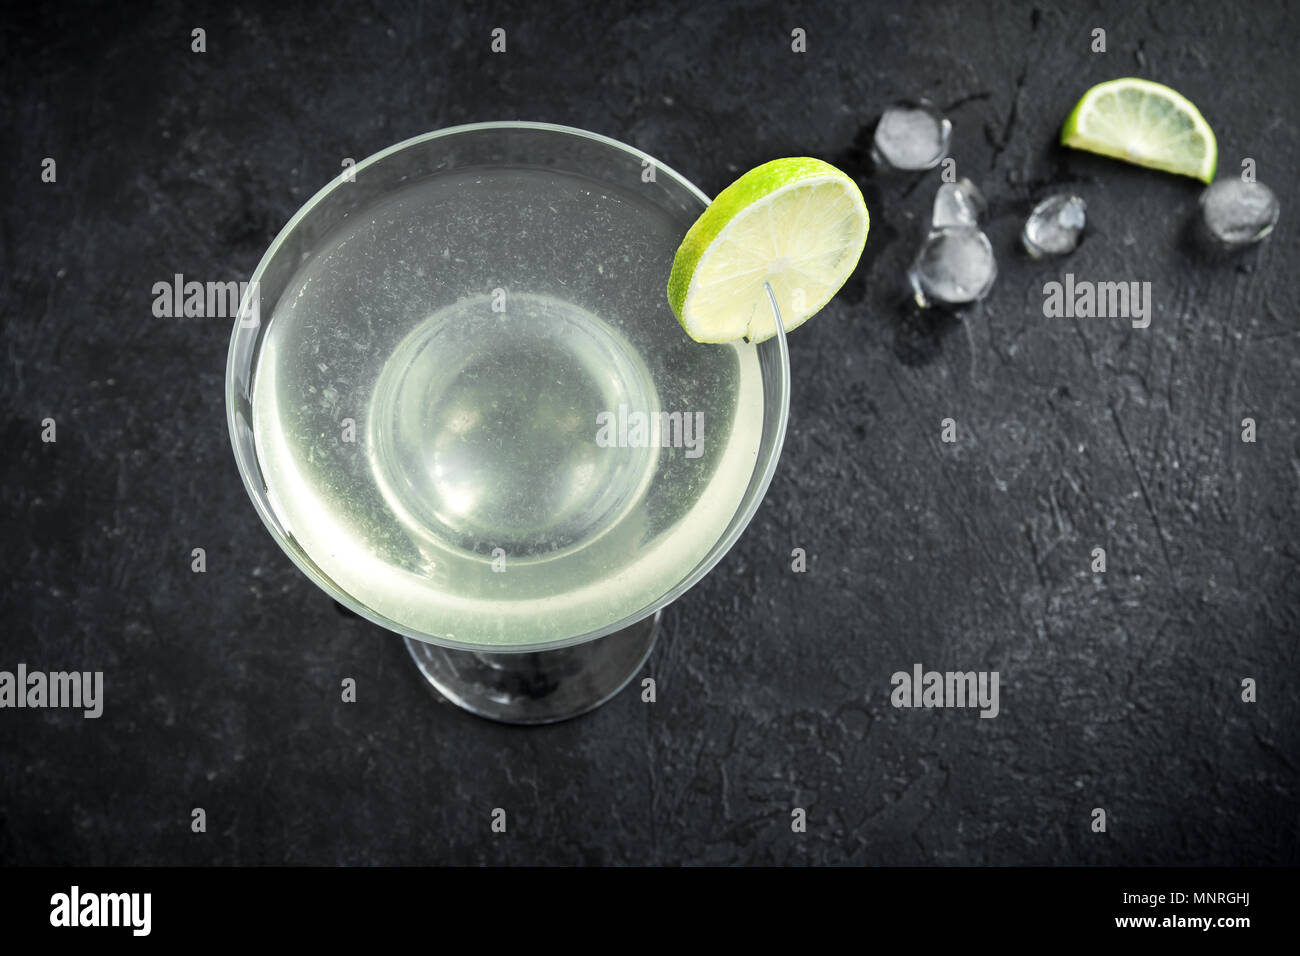 Gimlet Cocktail. Alcoholic Lime and Gin Gimlet on black background, copy space. Stock Photo